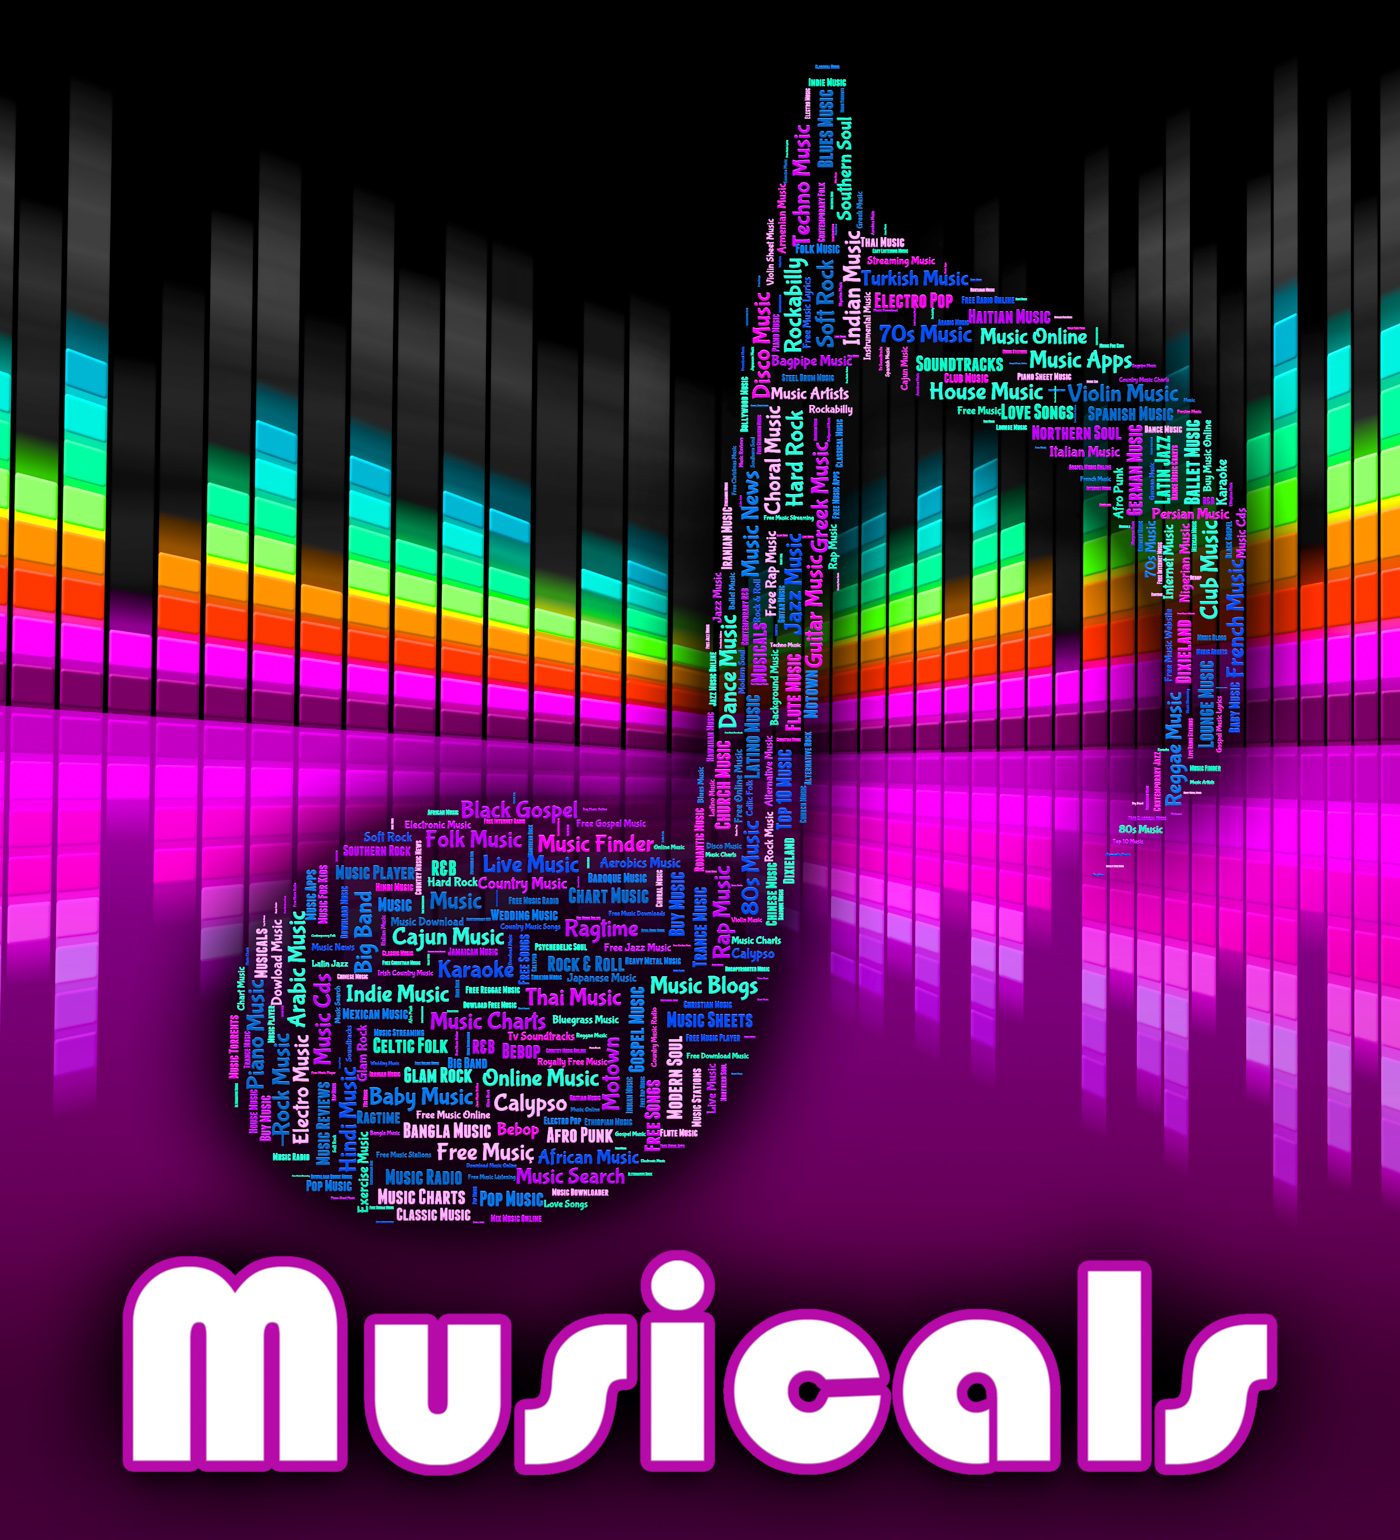 Free photo: Musicals Music Shows Sound Track And Audio